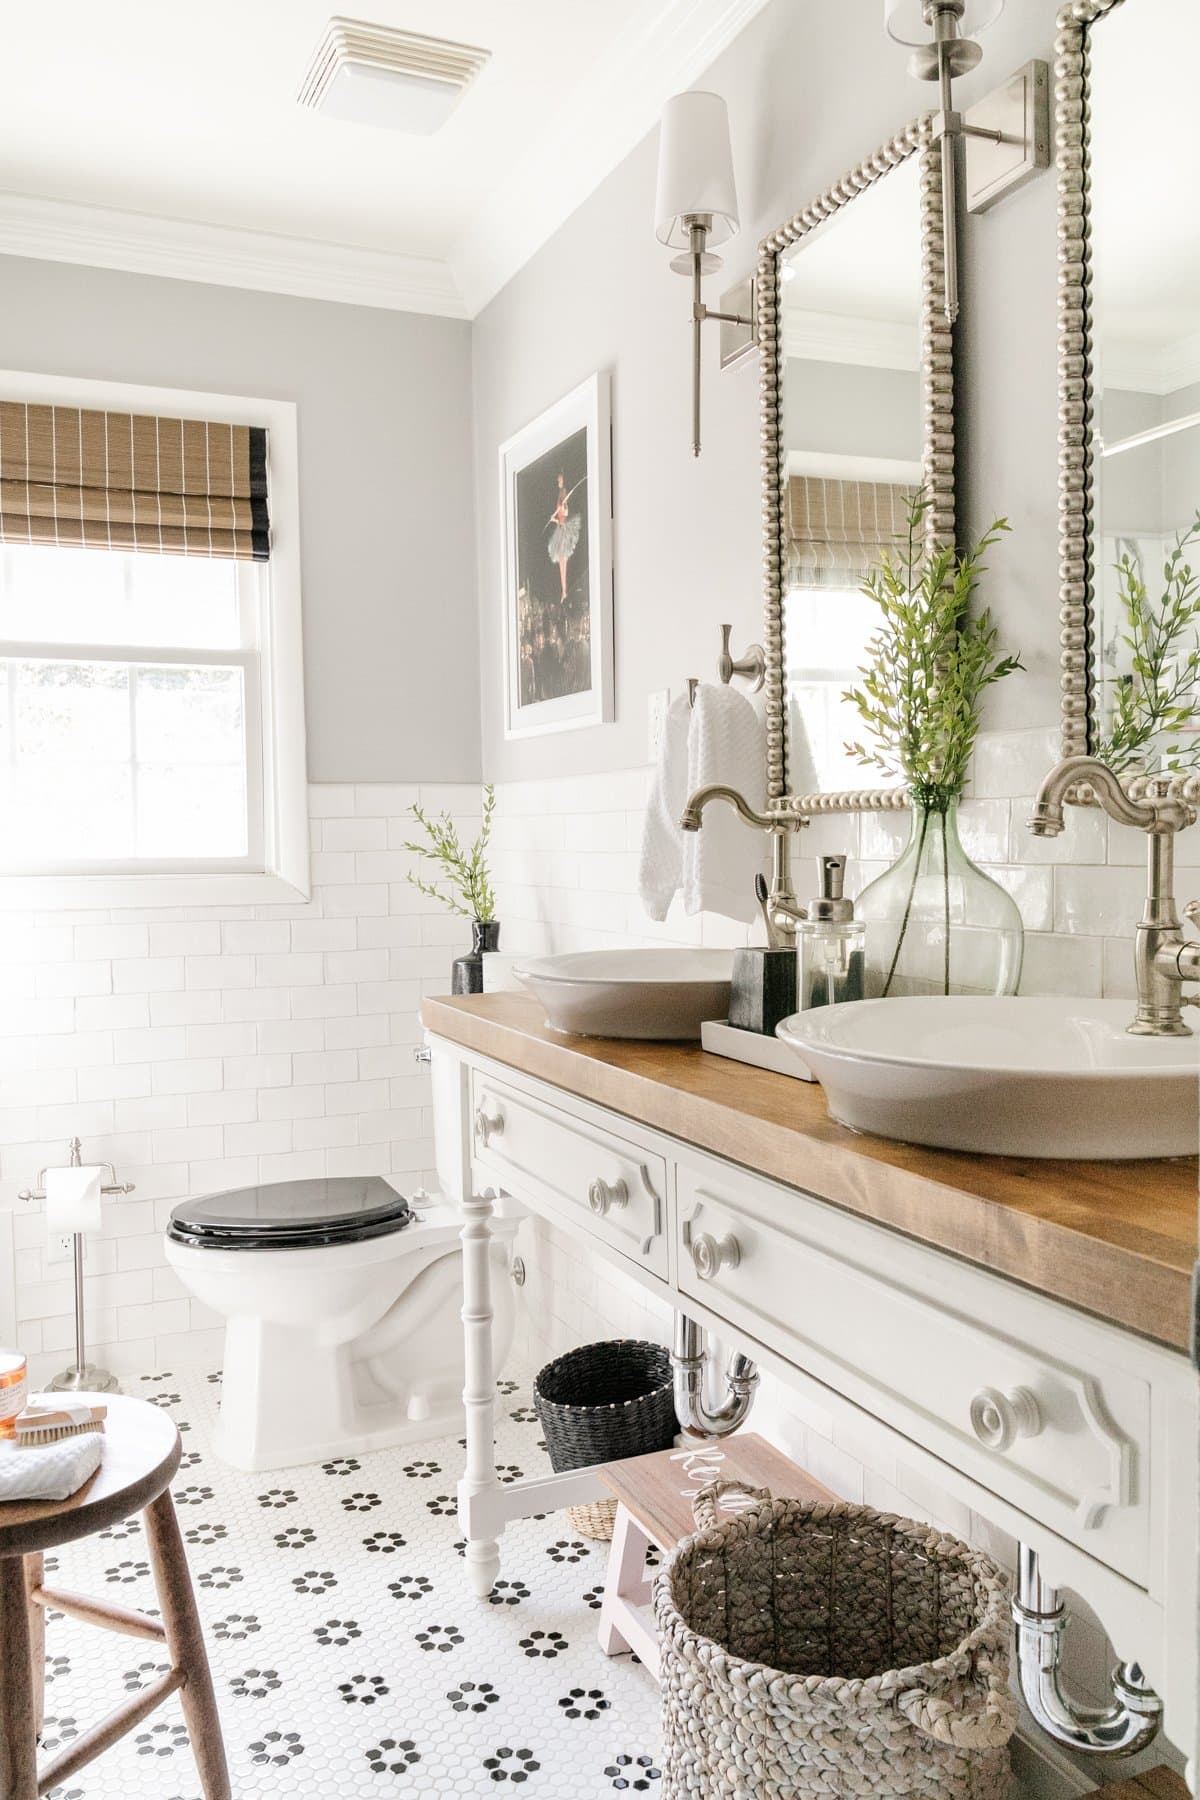 classic black and white bathroom decor with retro tile and Chippendale bamboo style vanity